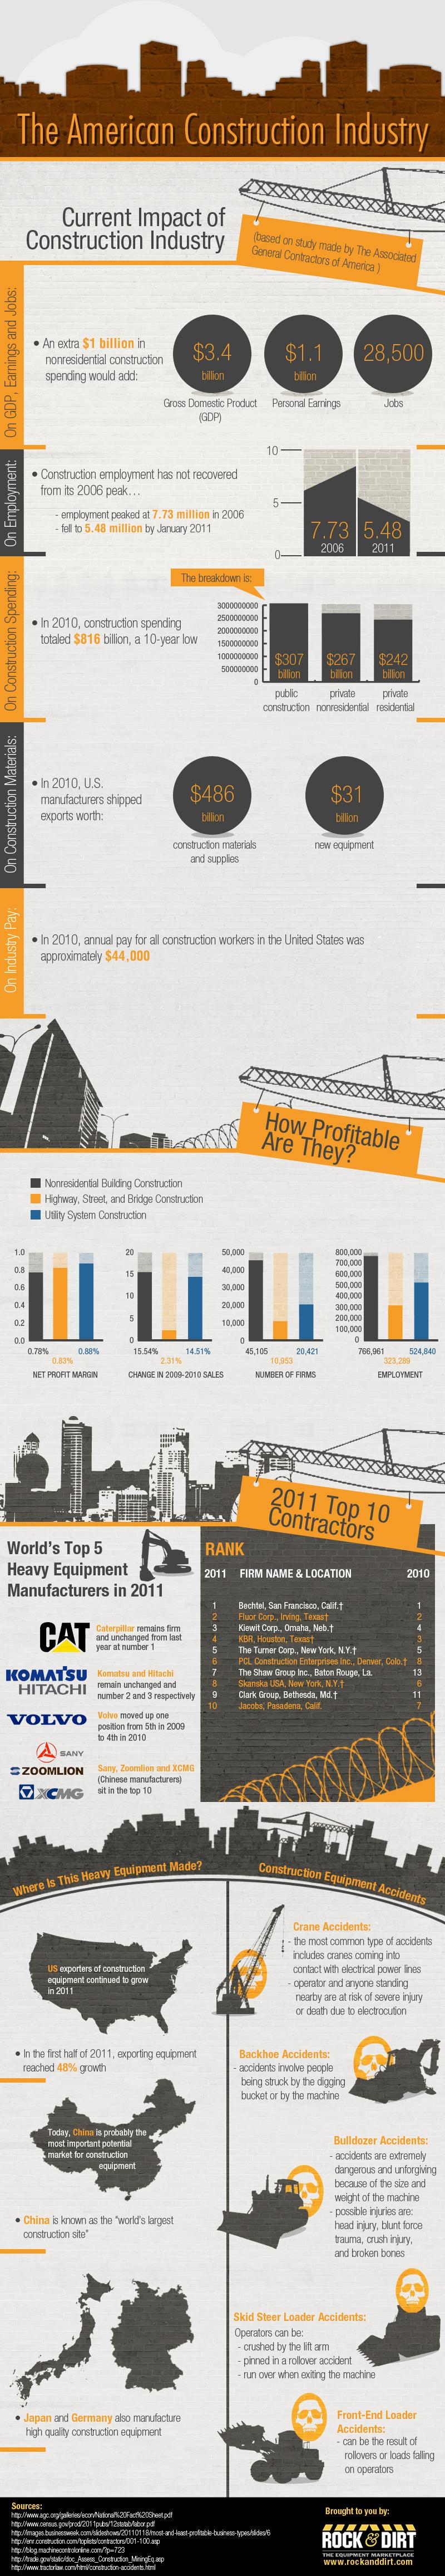 Construction-Industry-Statistics-and-Trends